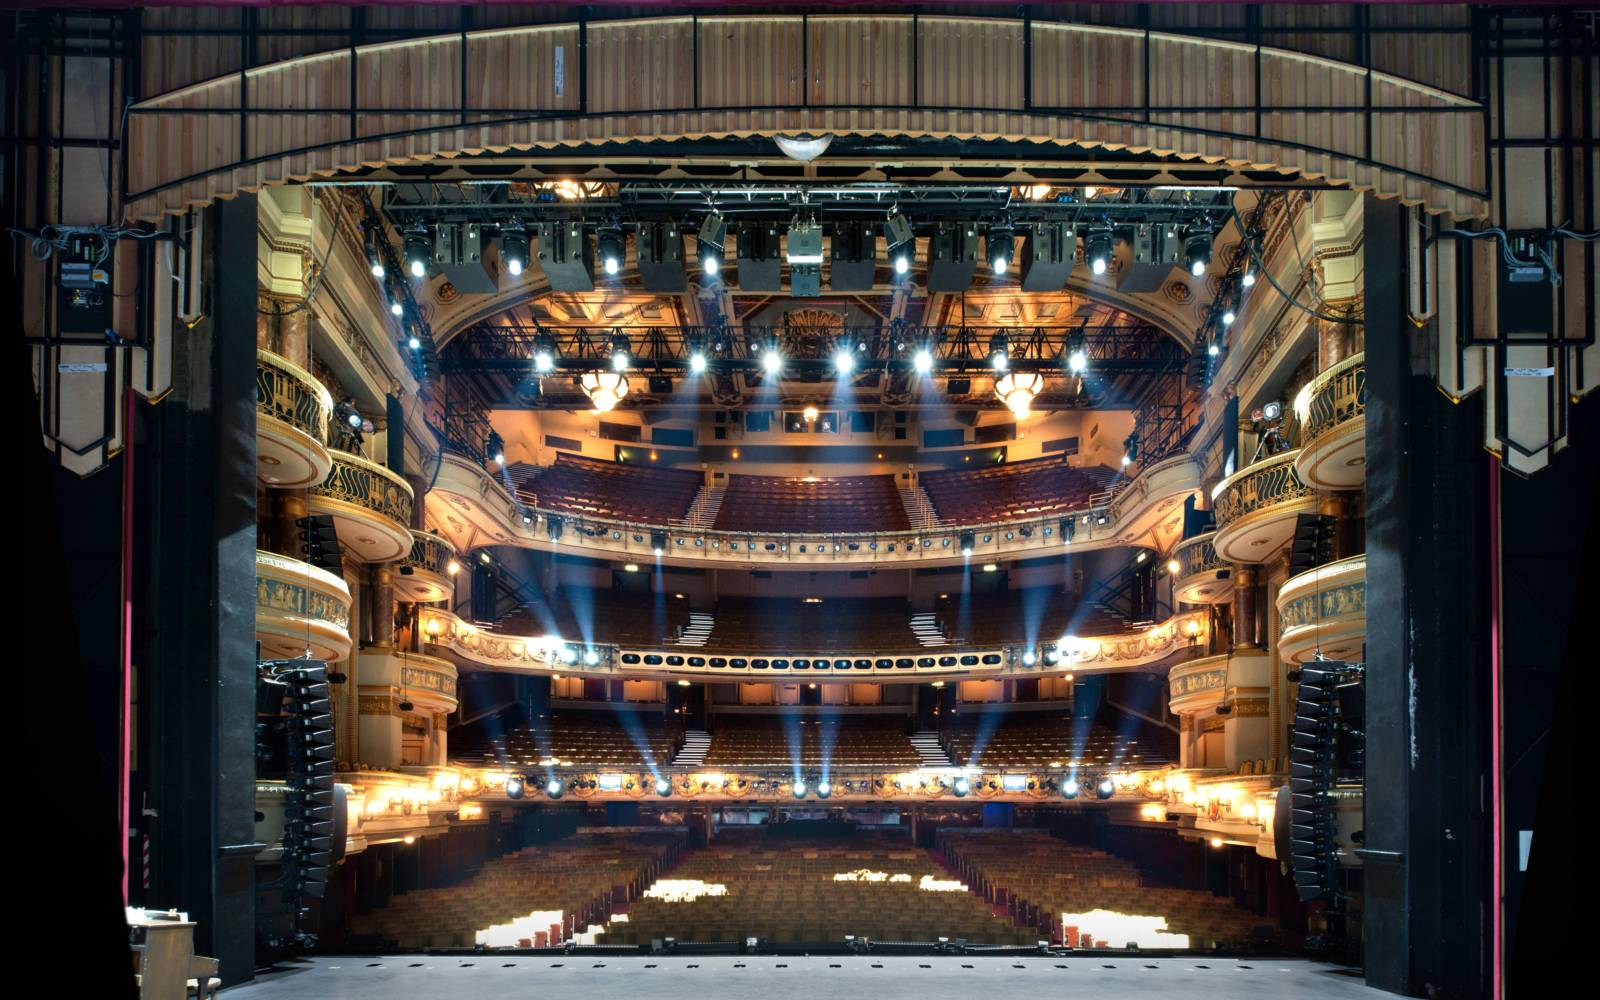 Sub-stage machinery at Theatre Royal Drury Lane to be relocated